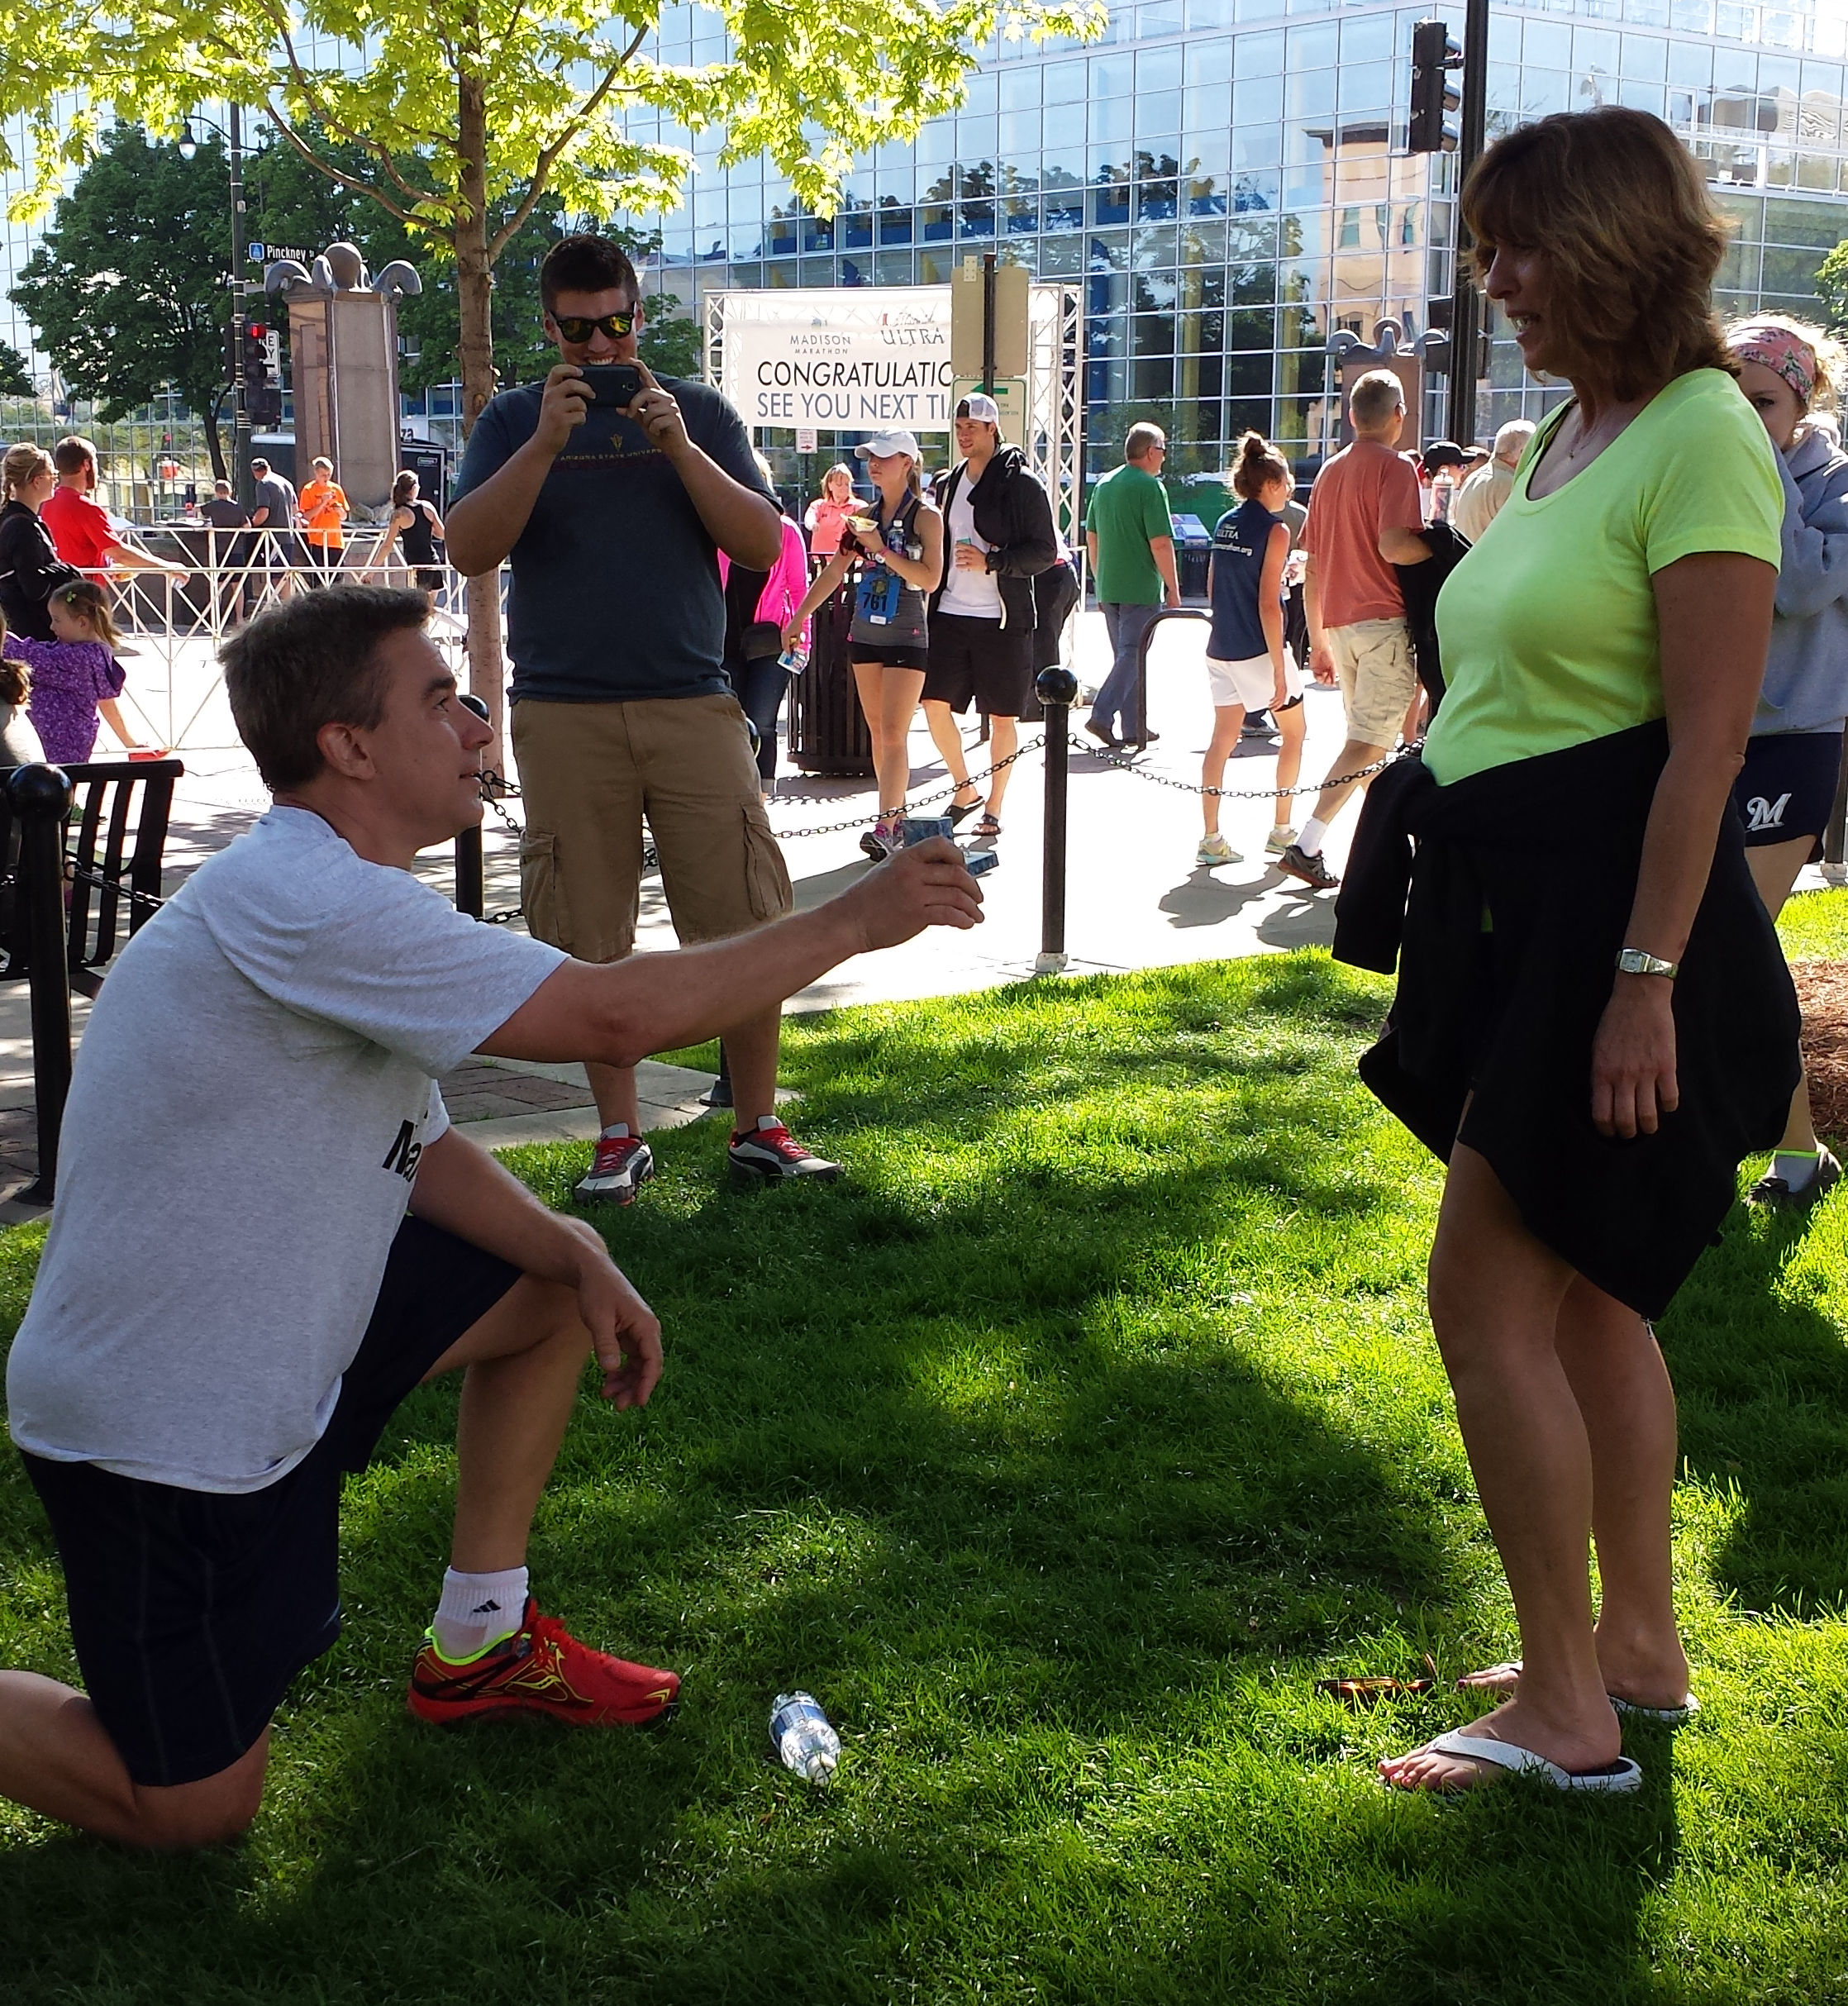 Greg proposed to his fiancé after the 2014 Spring Madison Half Marathon. Photo provided by Greg's daughter Rebecca B.